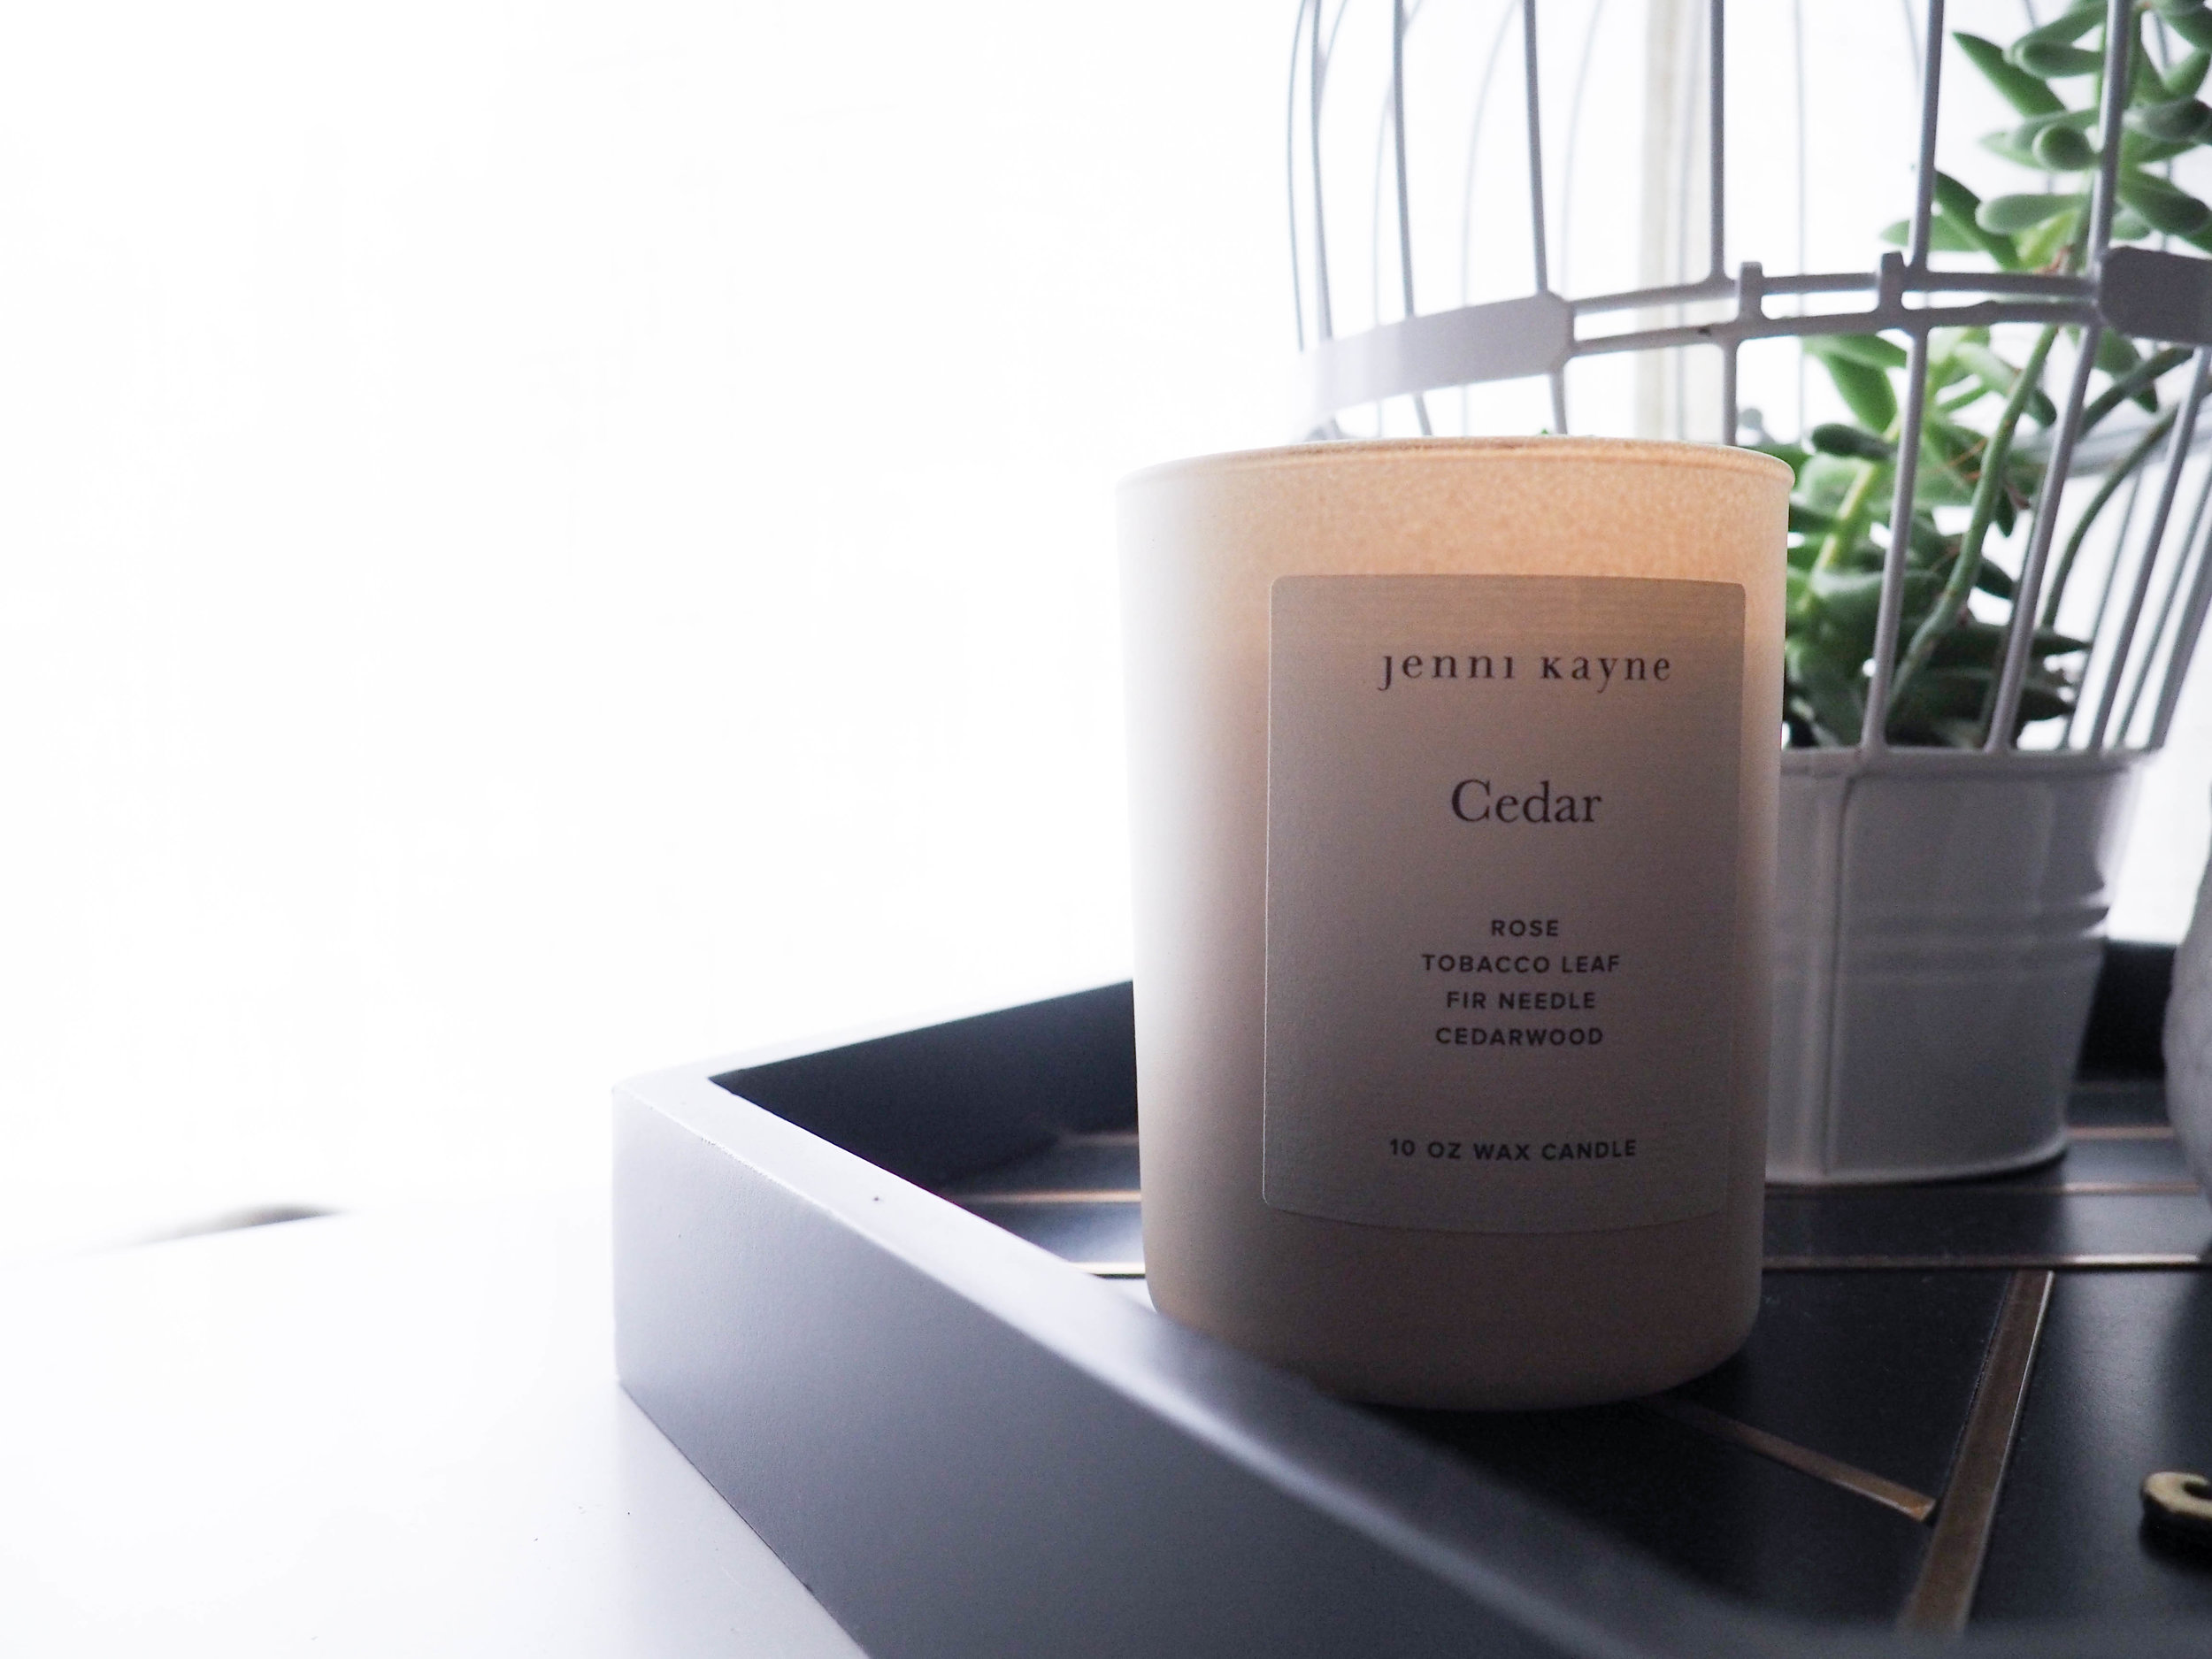 My current scent-obsession — Cedar by Jenni Kayne.